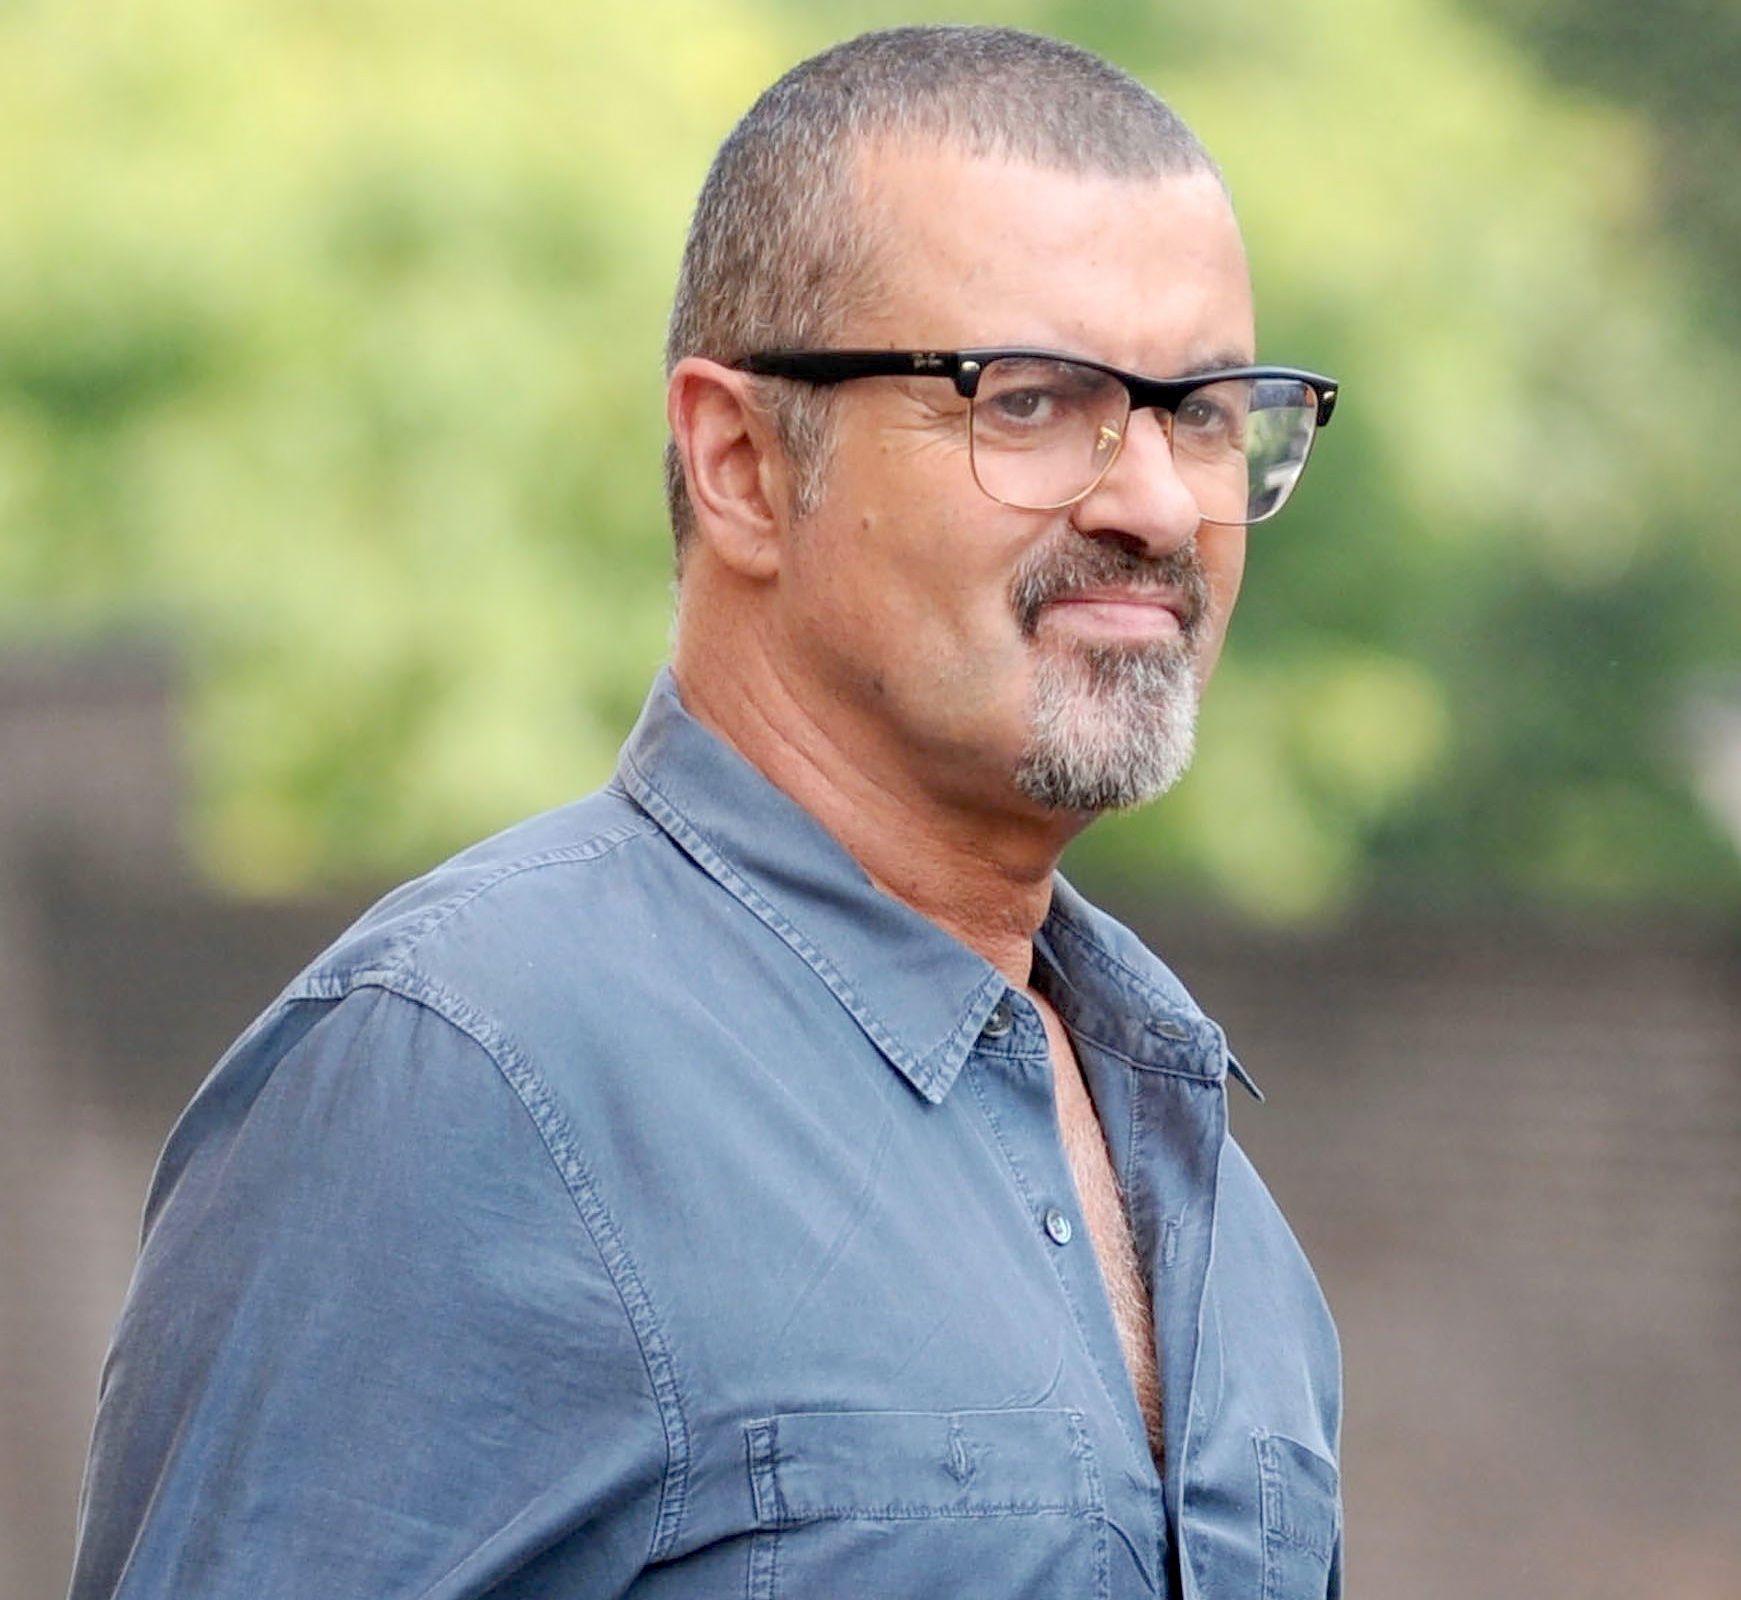 George Michael leaves the Cote Brassiere restaurant in Highgate on August 25, 2013.